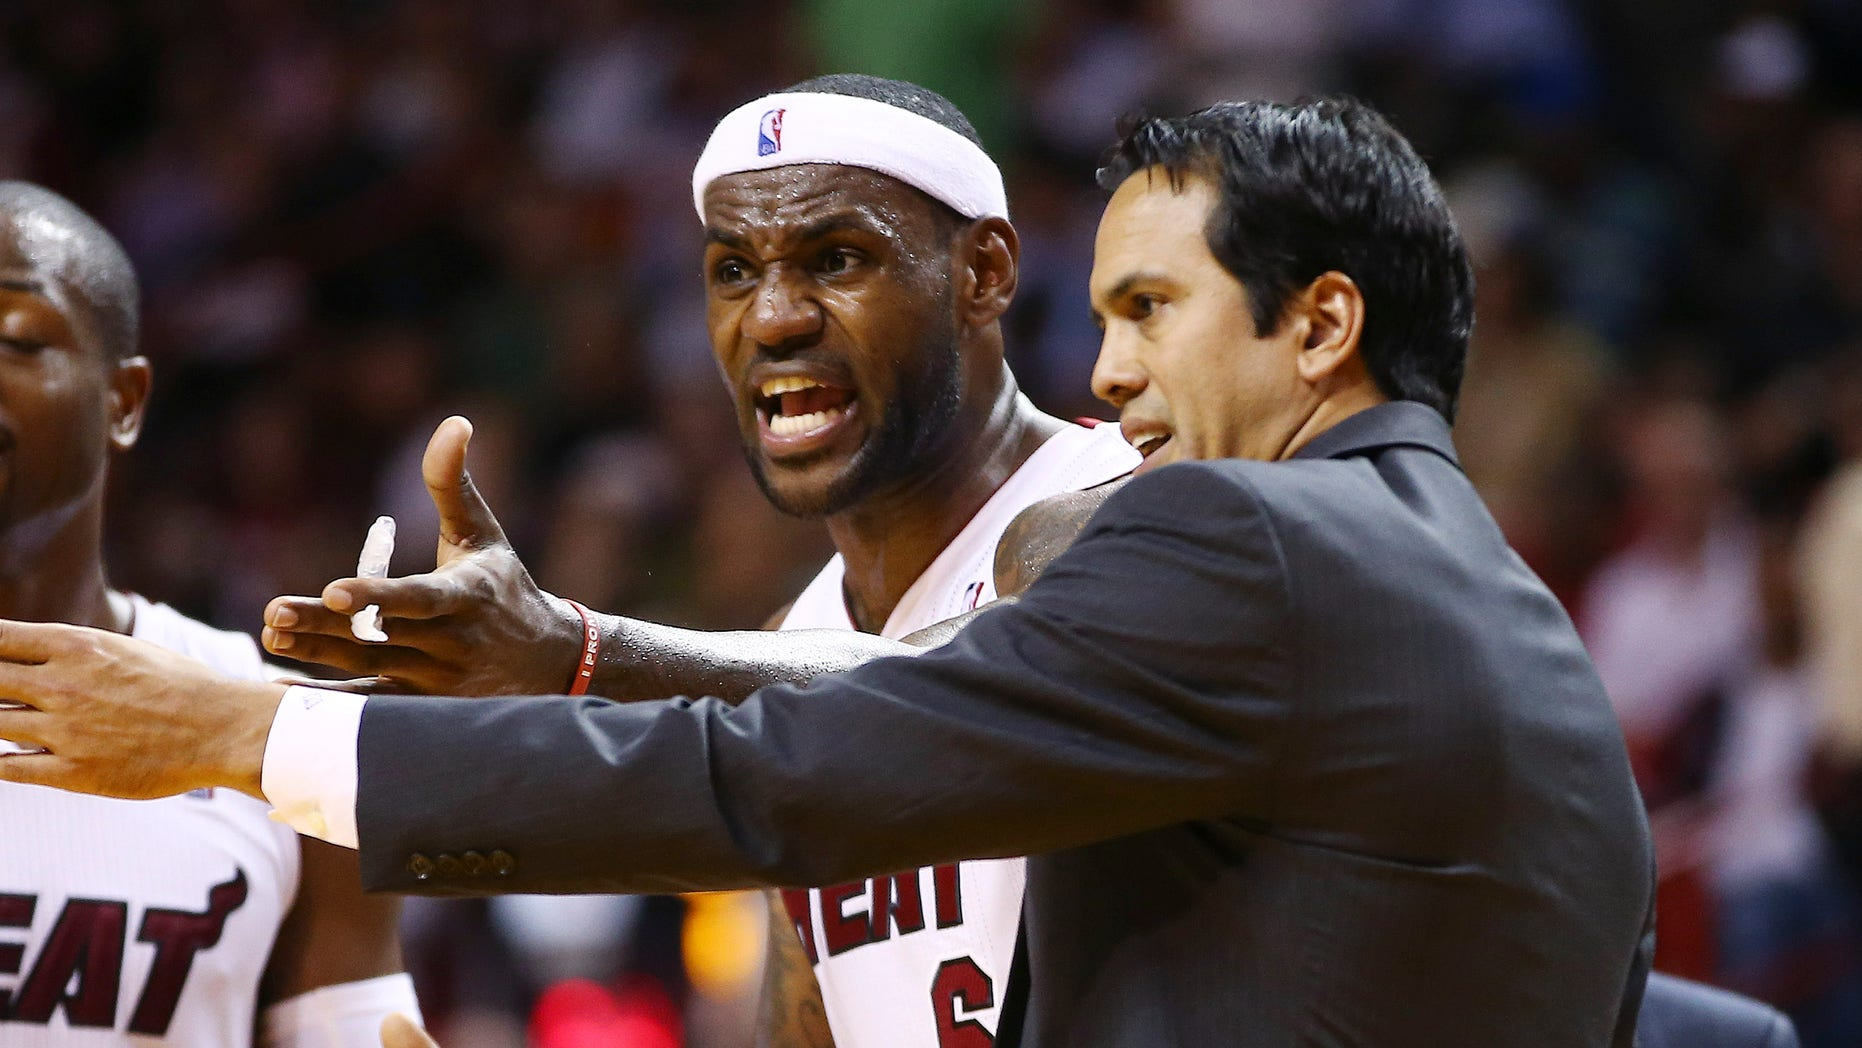 Miami Heat coach Erik Spoelstra, right, and LeBron James protest a loose ball foul called against James during the second half of an NBA basketball game against the Los Angeles Clippers in Miami, Thursday, Nov. 7, 2013. The Heat won 102-97. (AP Photo/J Pat Carter)